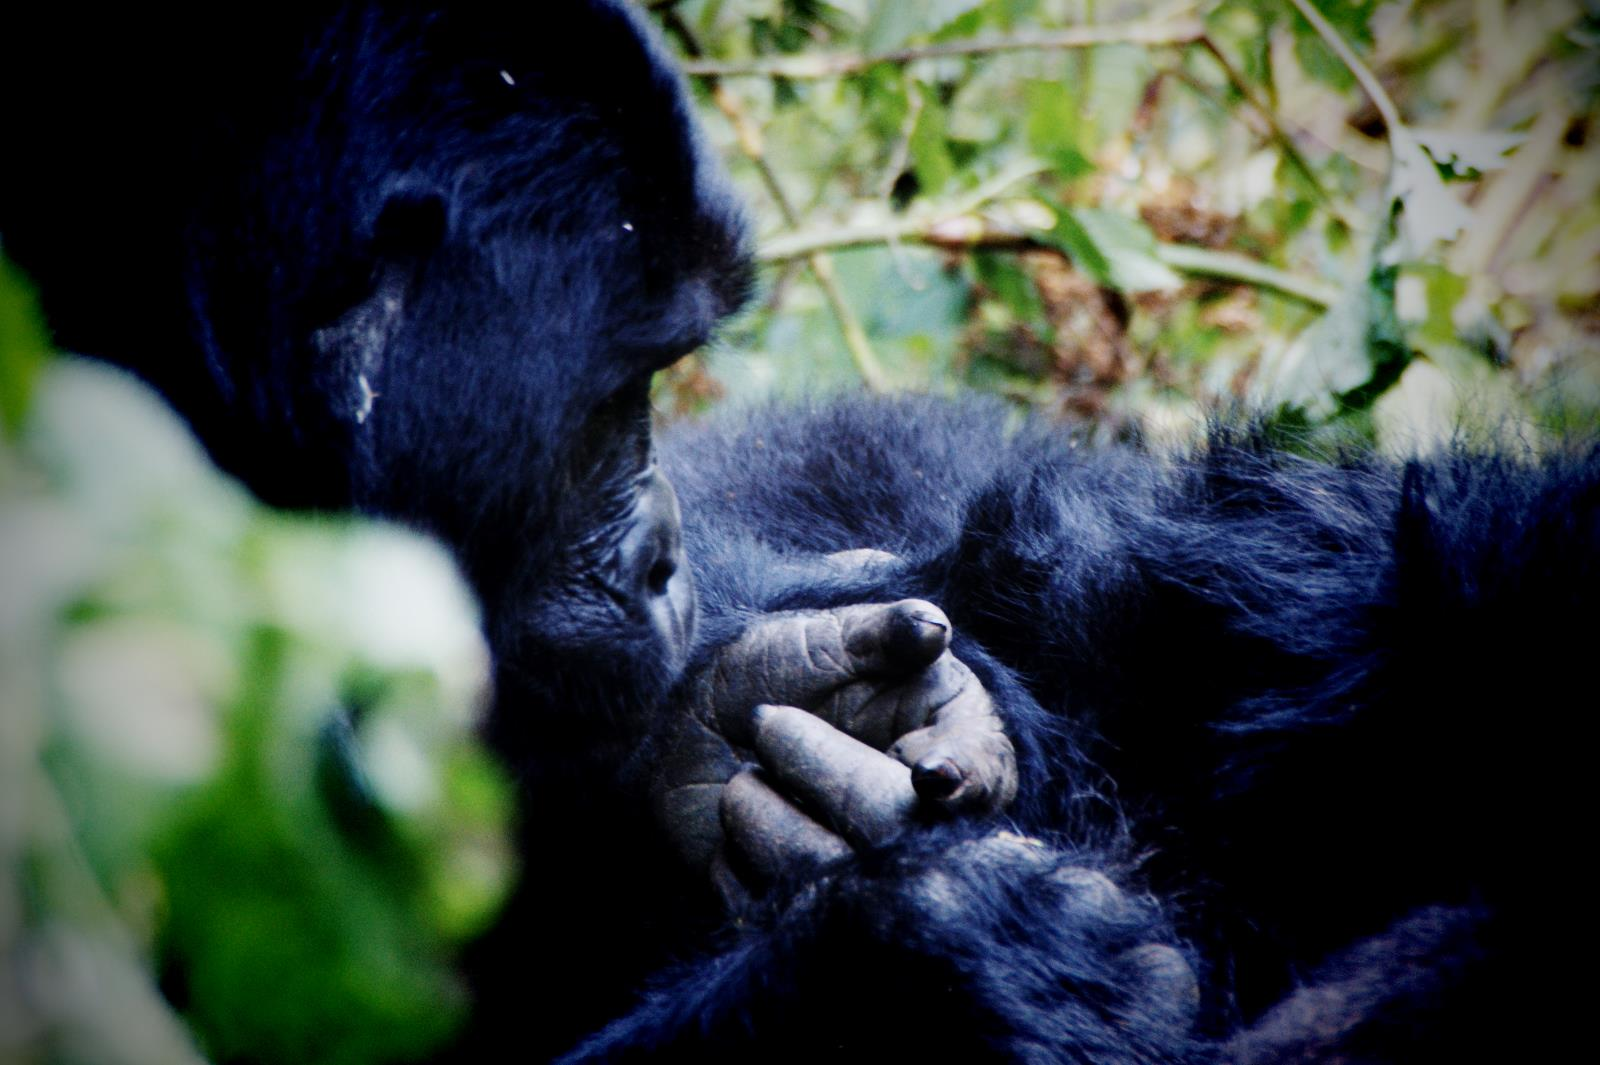 Gorilla Tracking at Bwindi National Park in Uganda